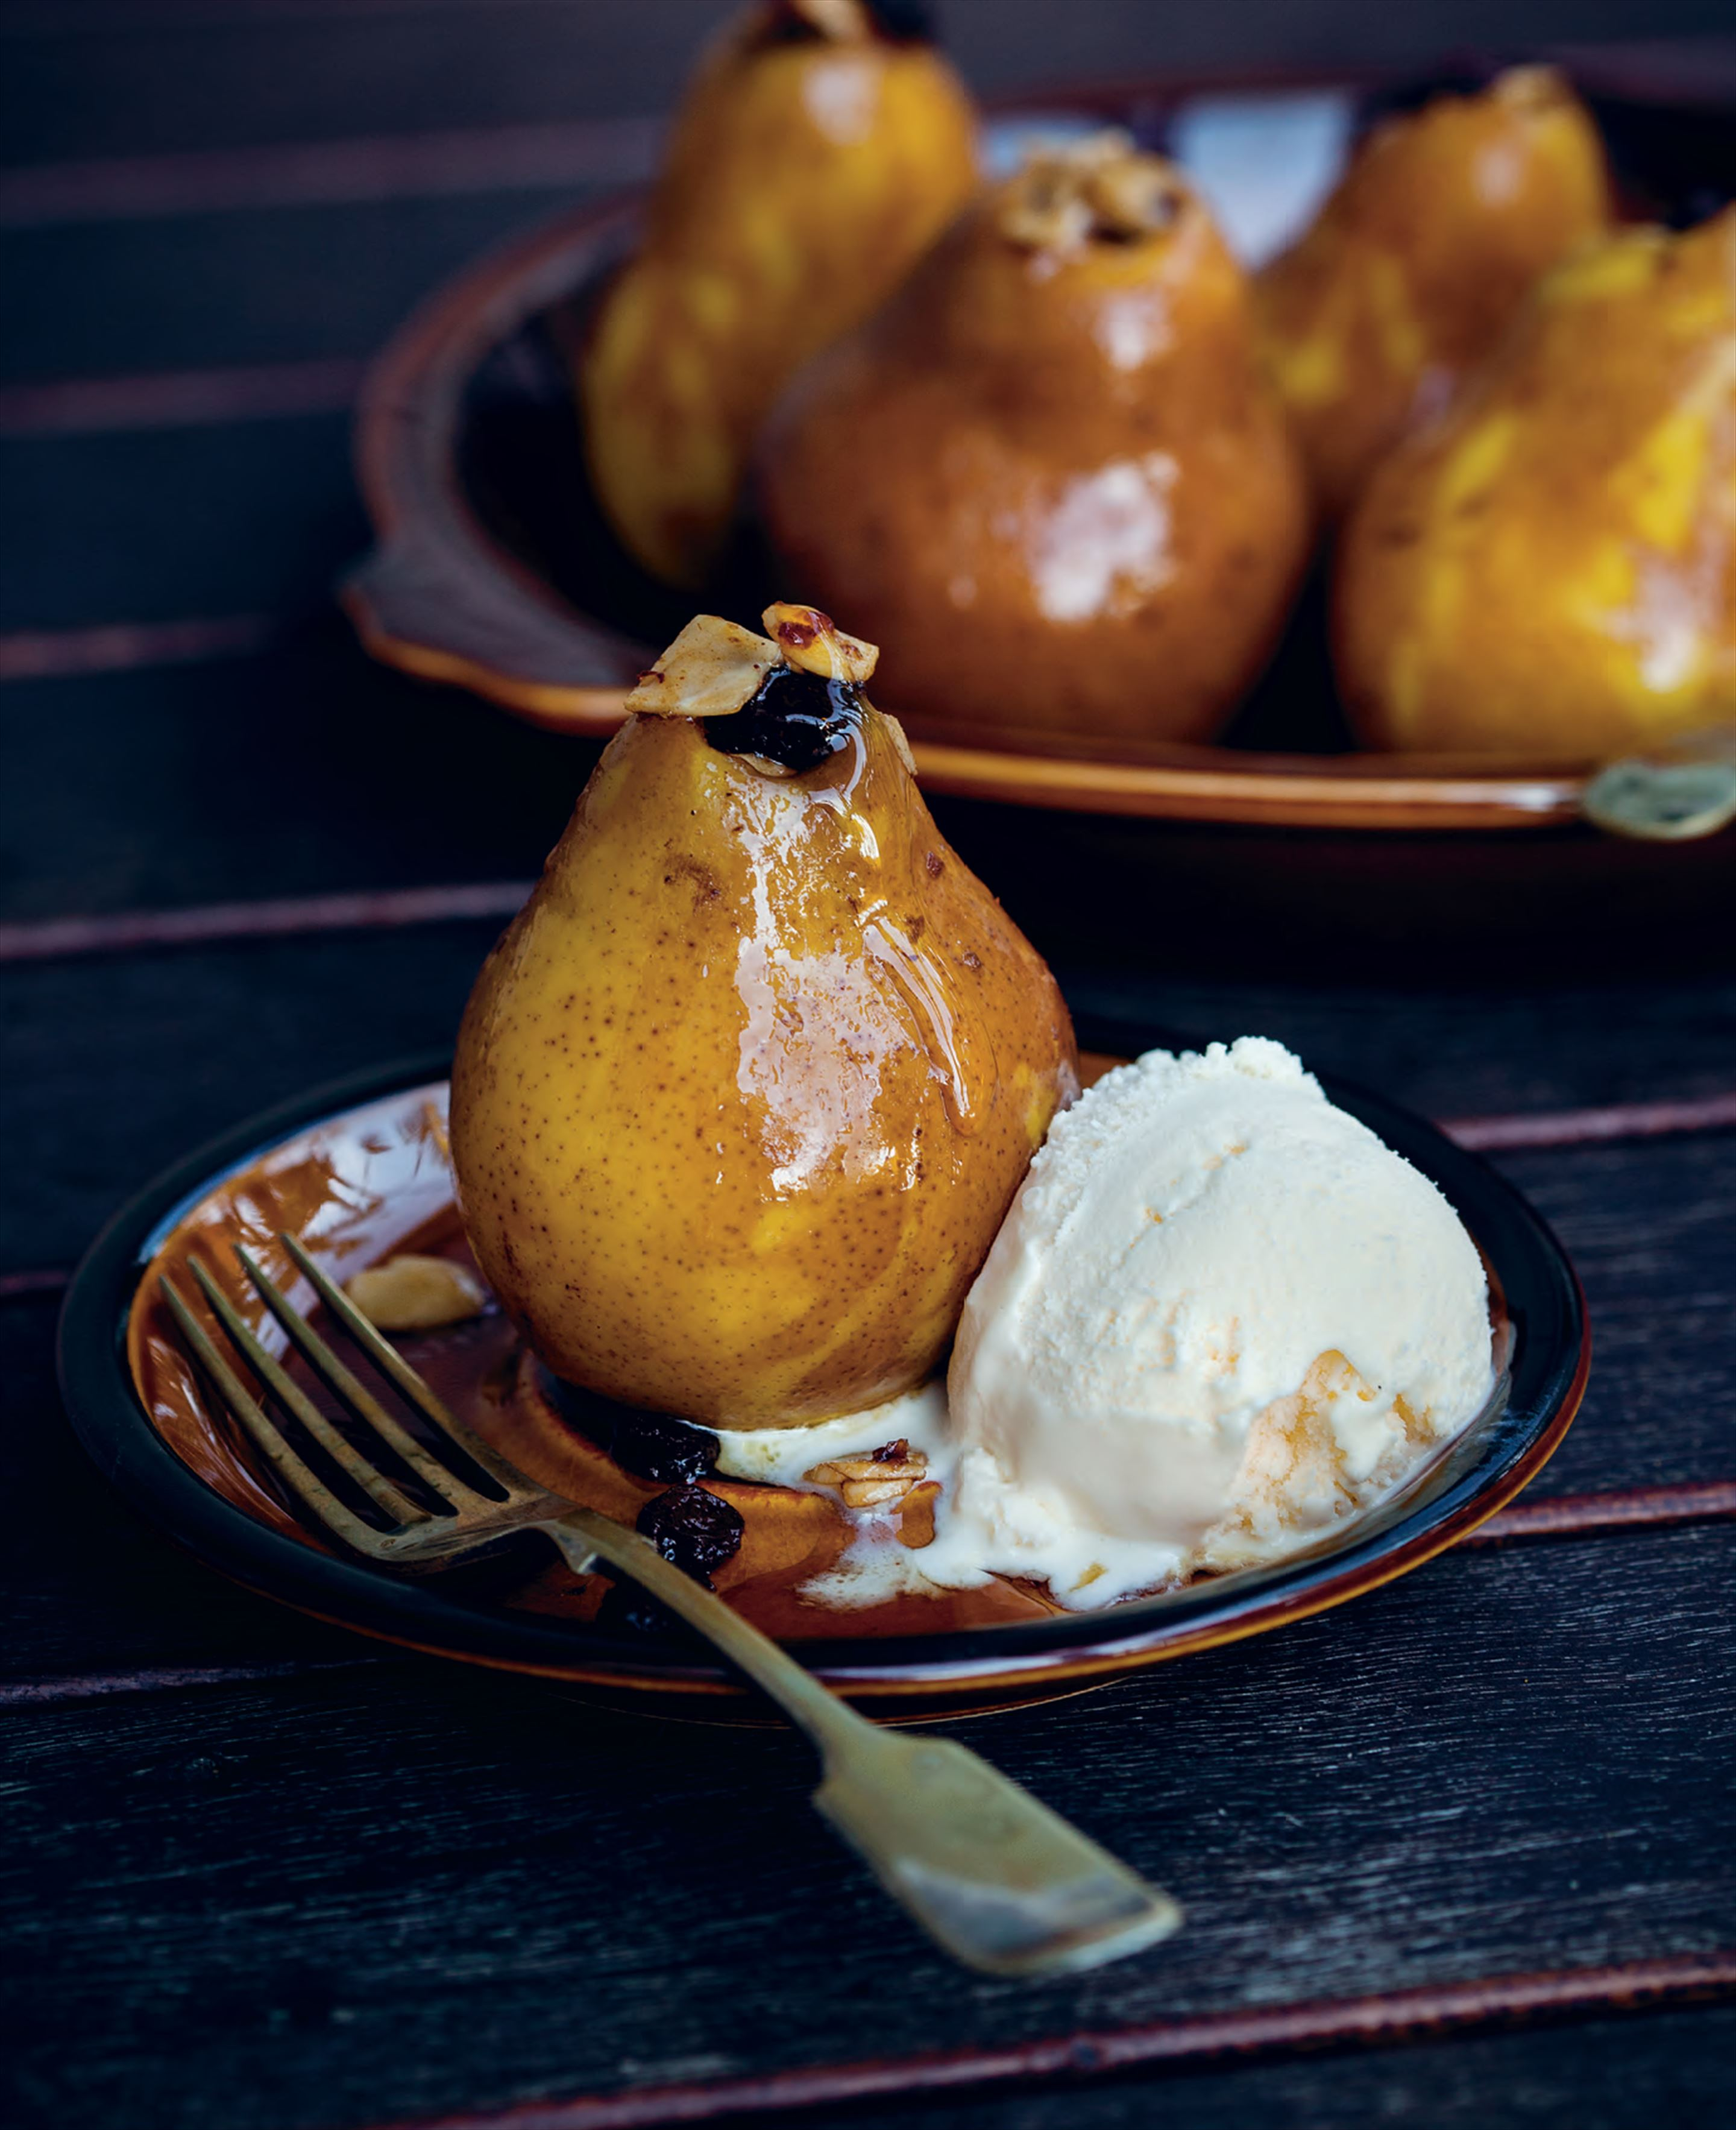 Baked pears and apples